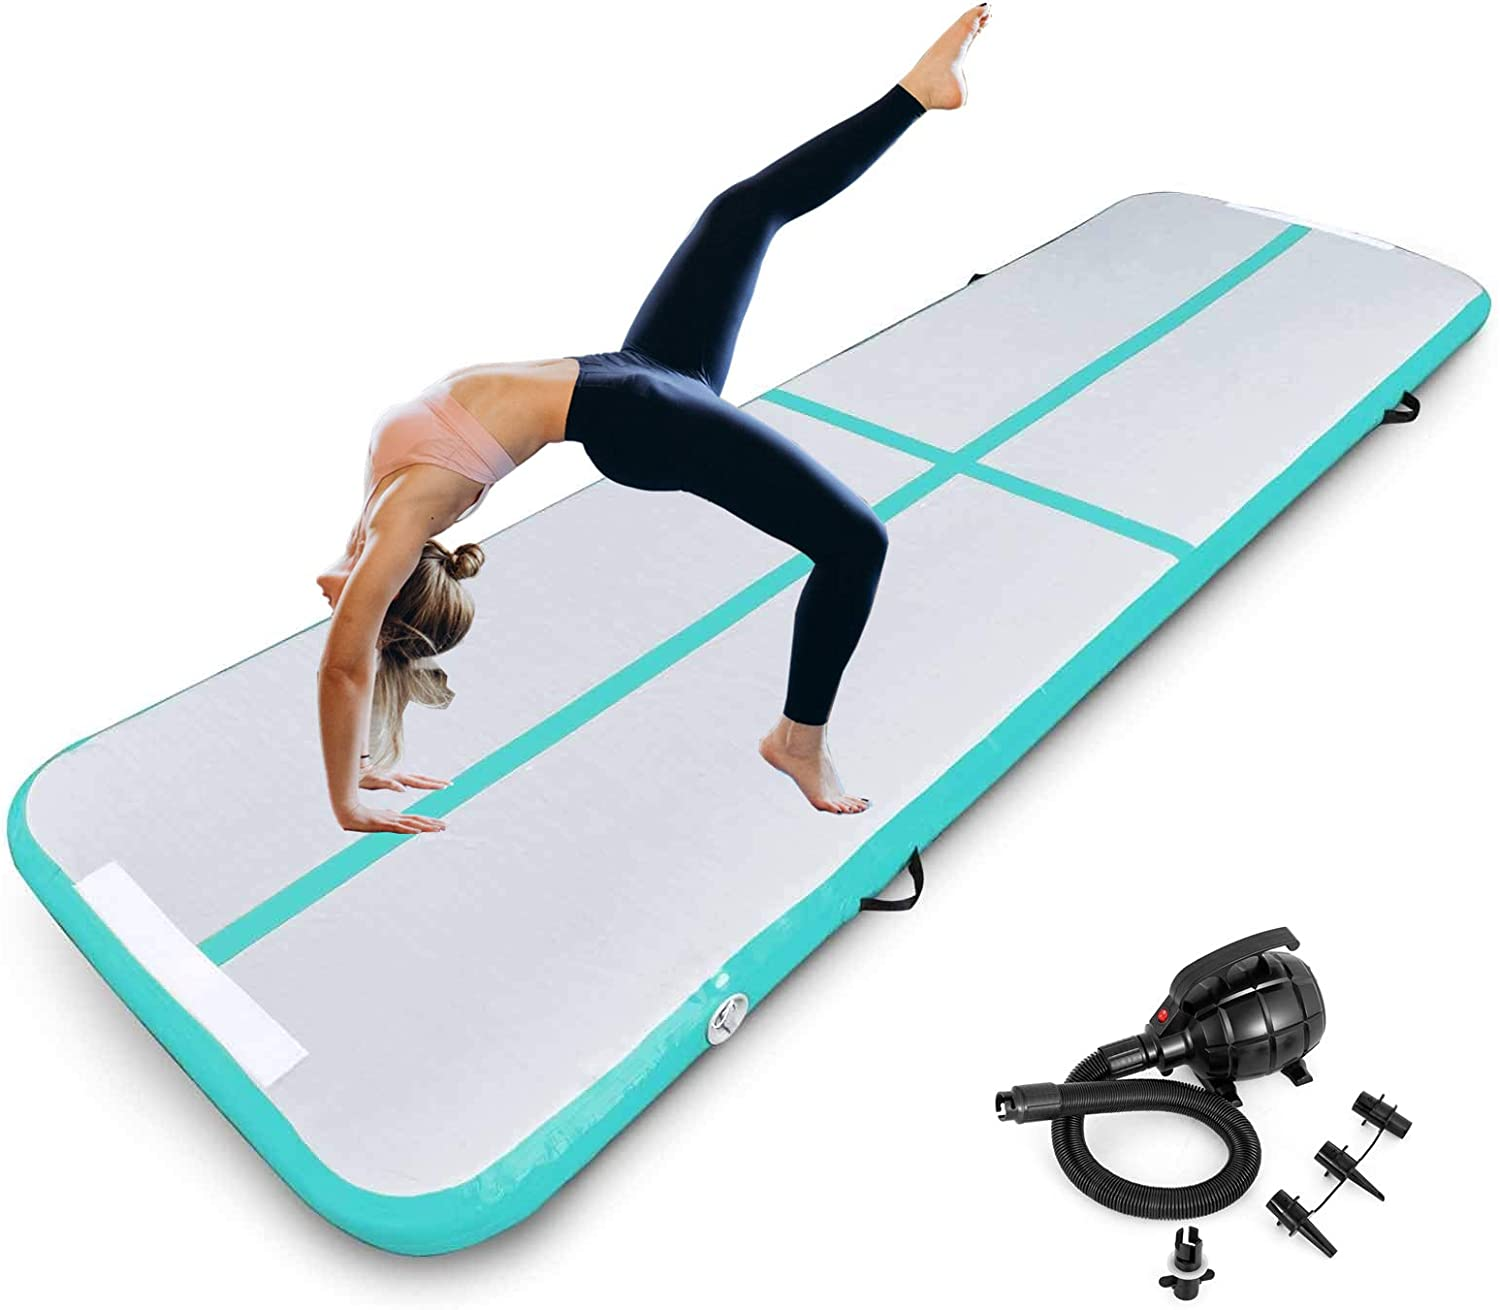 Inflatable Gymnastics Air Tumbling Track Mat 4 Inch Thickness Gymnastics mat 16ft for Home Use/Yoga/Training/Water with Electric Pump